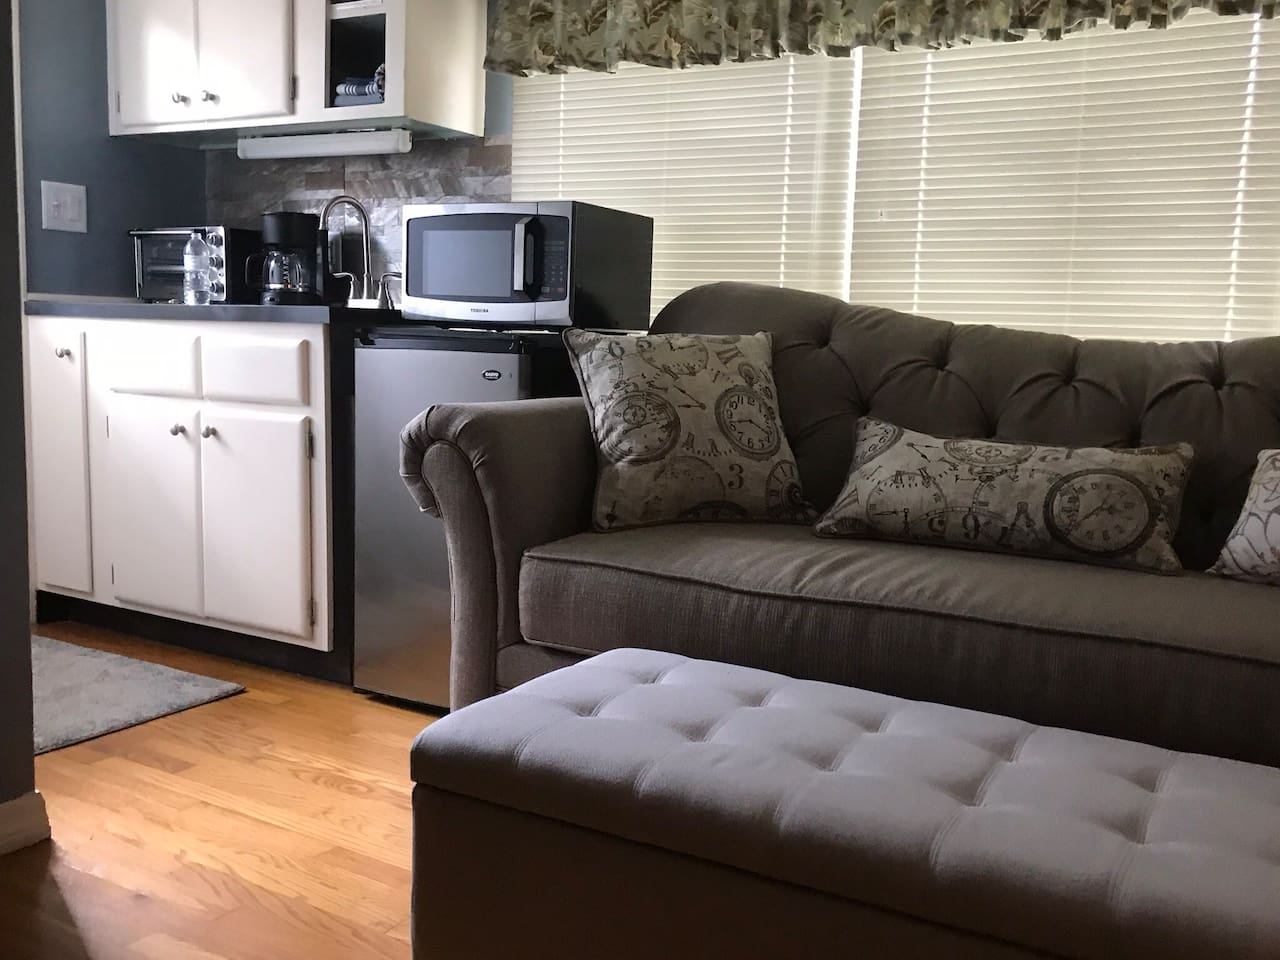 Comfy couch  Kitchenette has everything you need